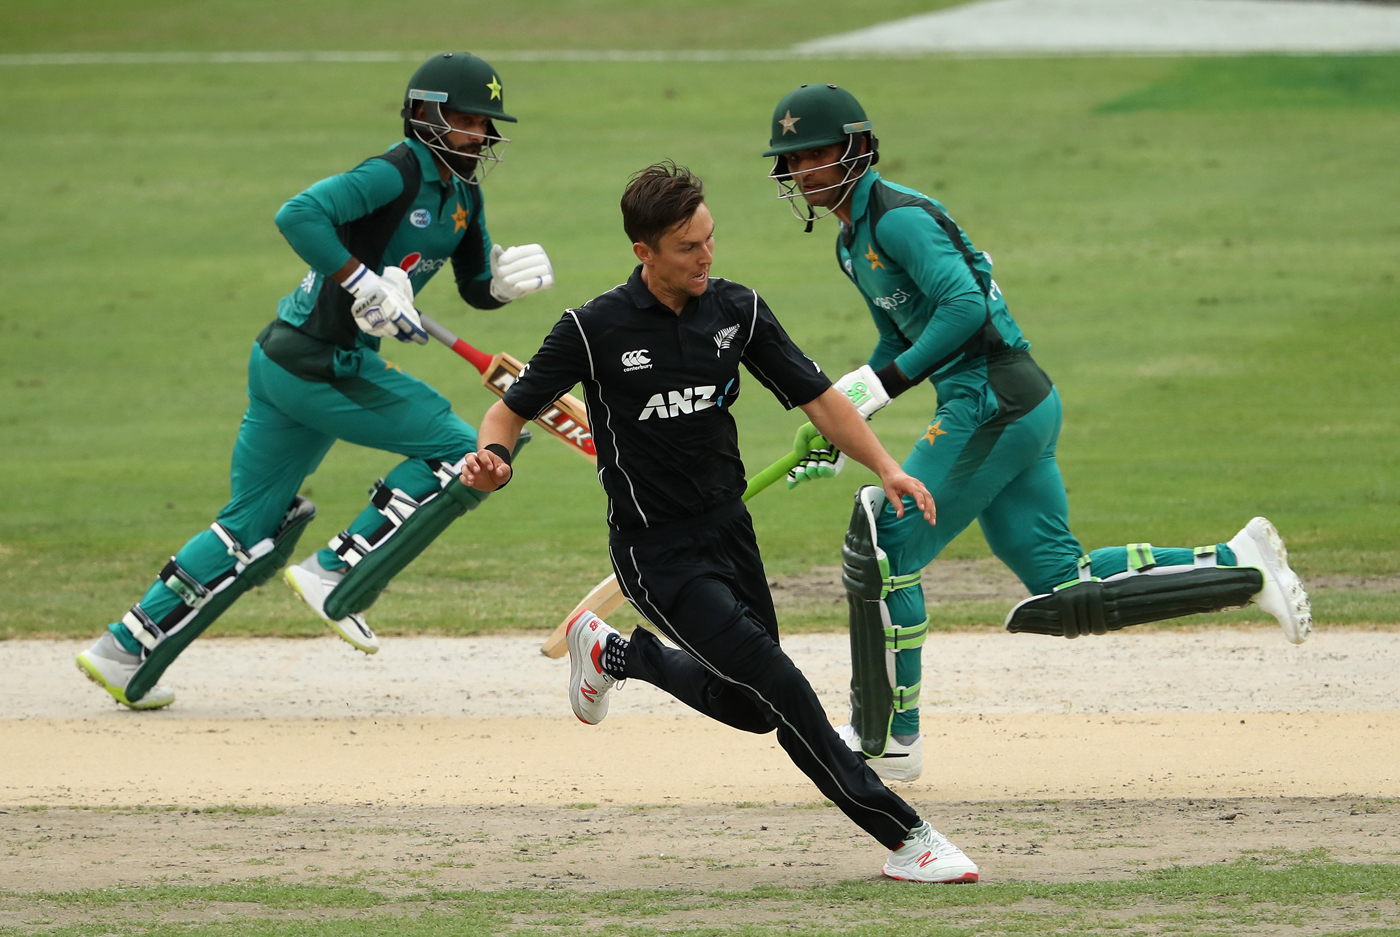 Final ODI between Pakistan and New Zealand washed out as series ends in a 1-1 draw